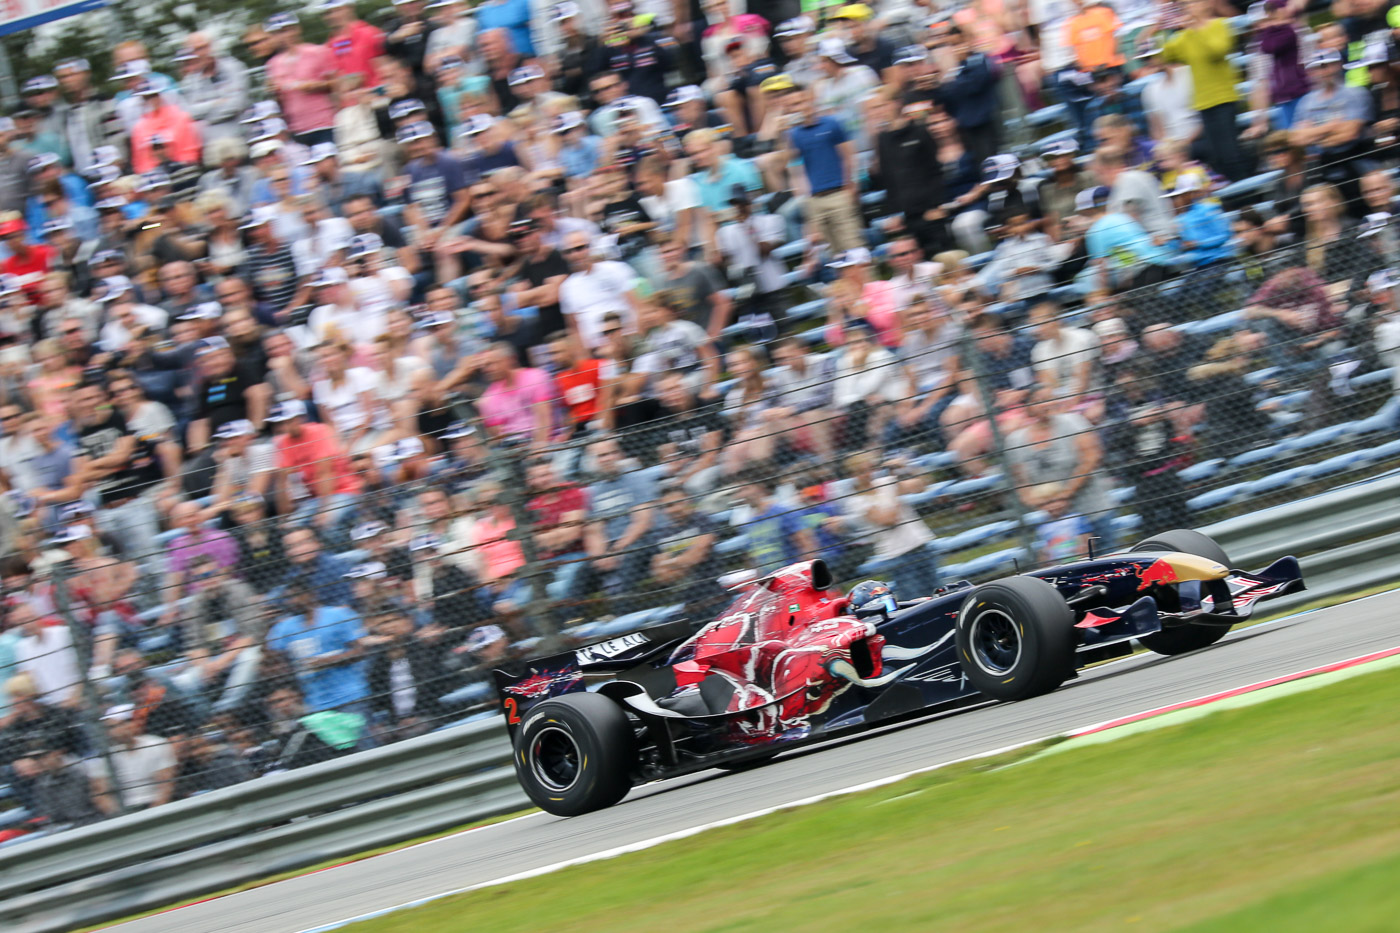 Ingo Gerstl in his STR1-F1 car in front of a packed crowd